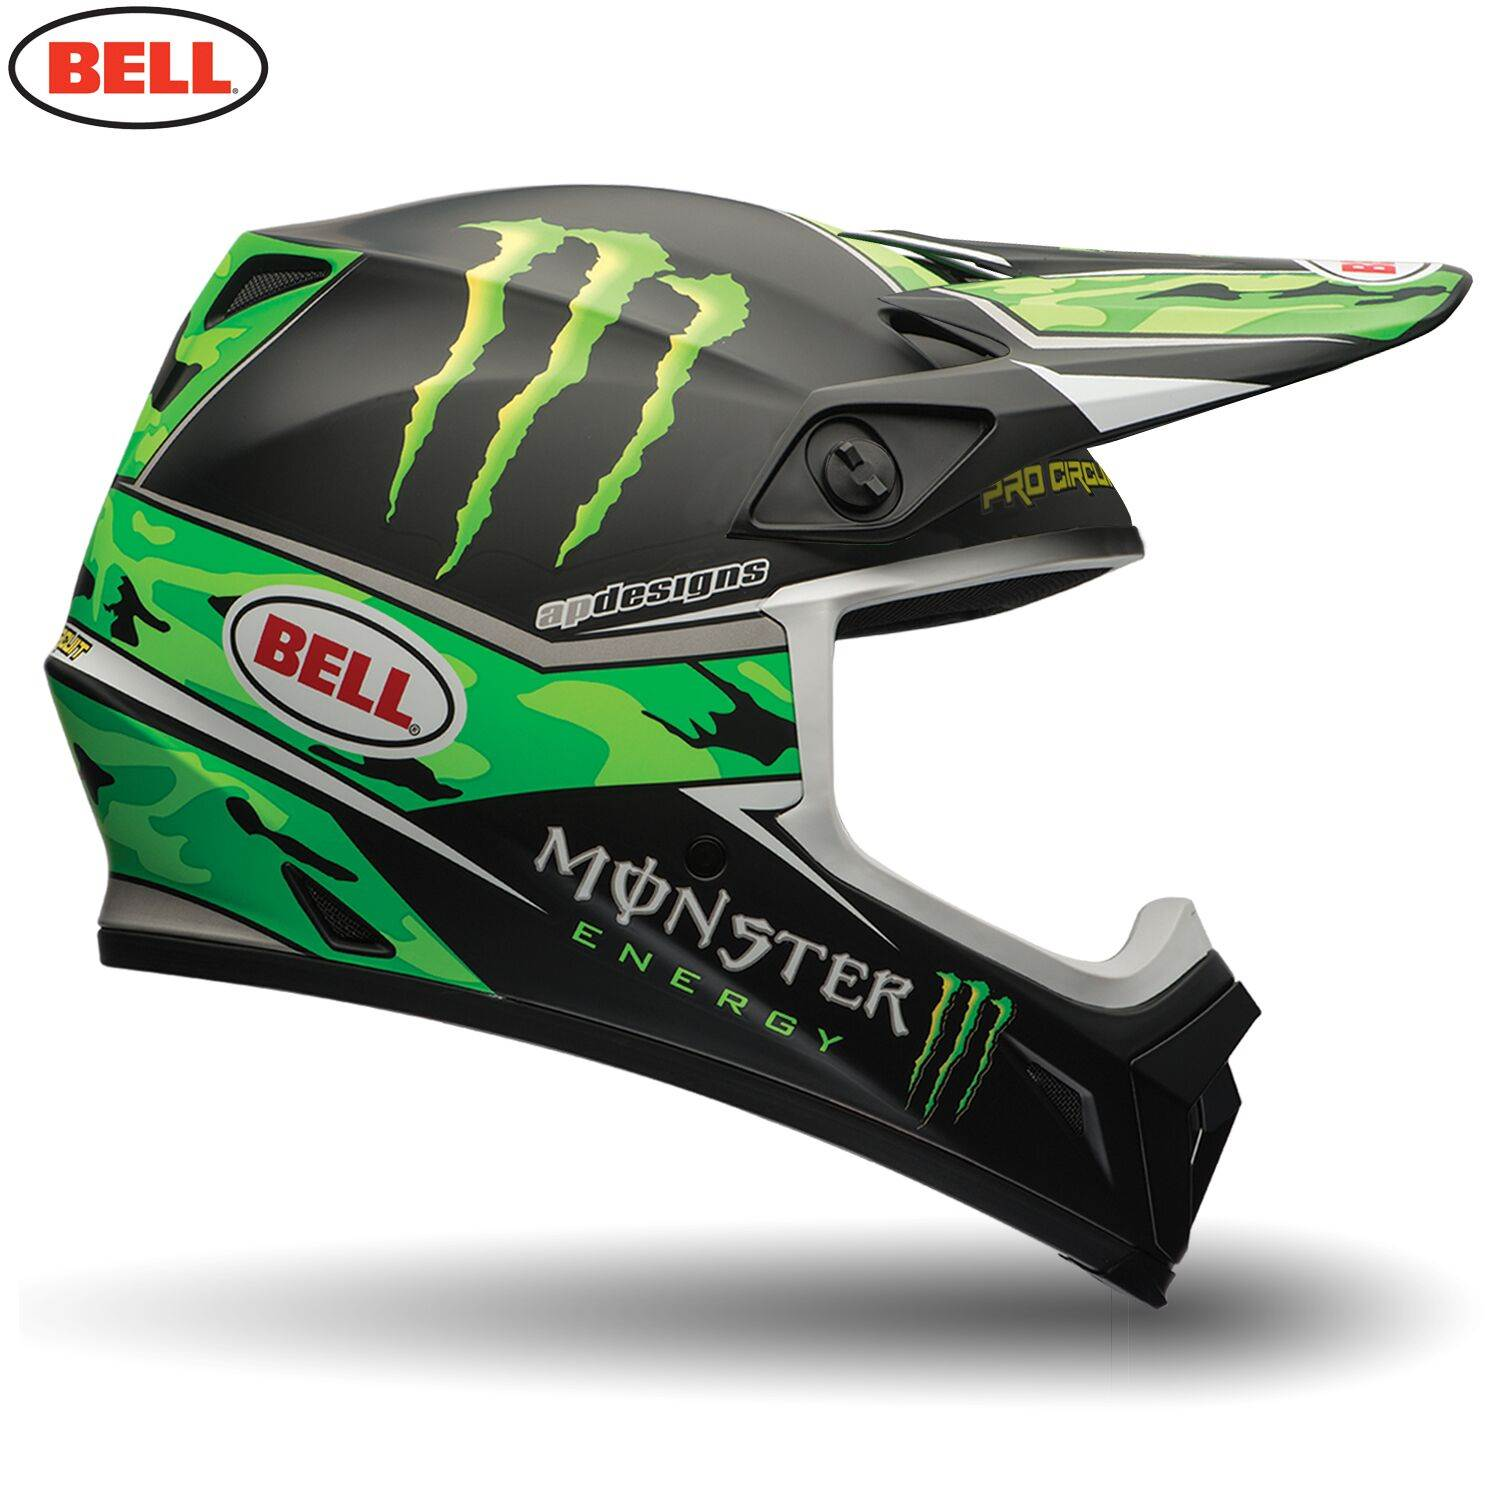 bell motorcycle motocross helmet mx 9 circuit monster camo. Black Bedroom Furniture Sets. Home Design Ideas